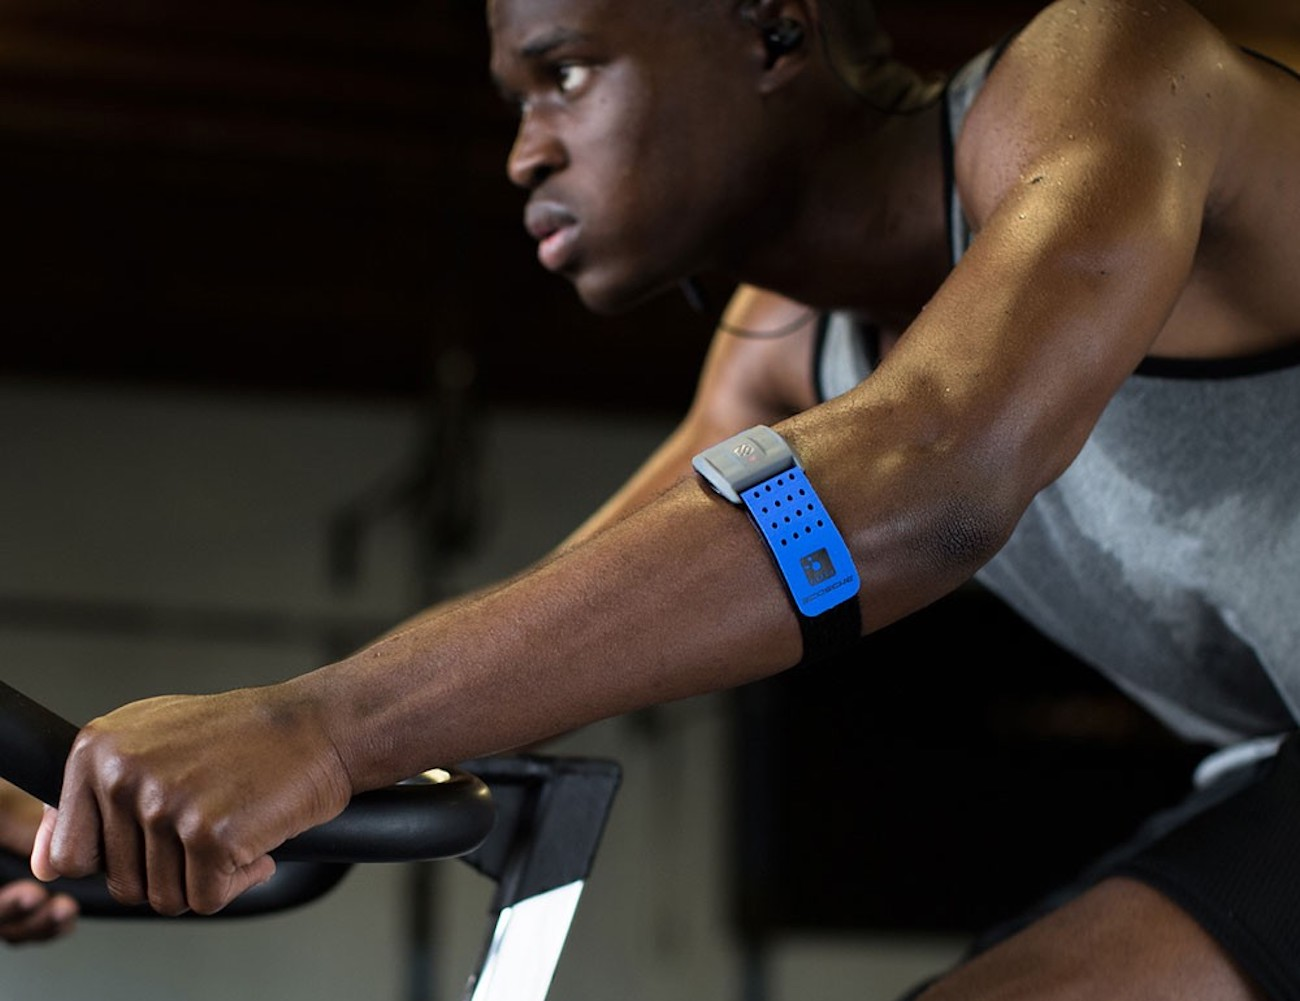 Scosche Rhythm+ Armband Heart Rate Monitor tracks exercise intensity